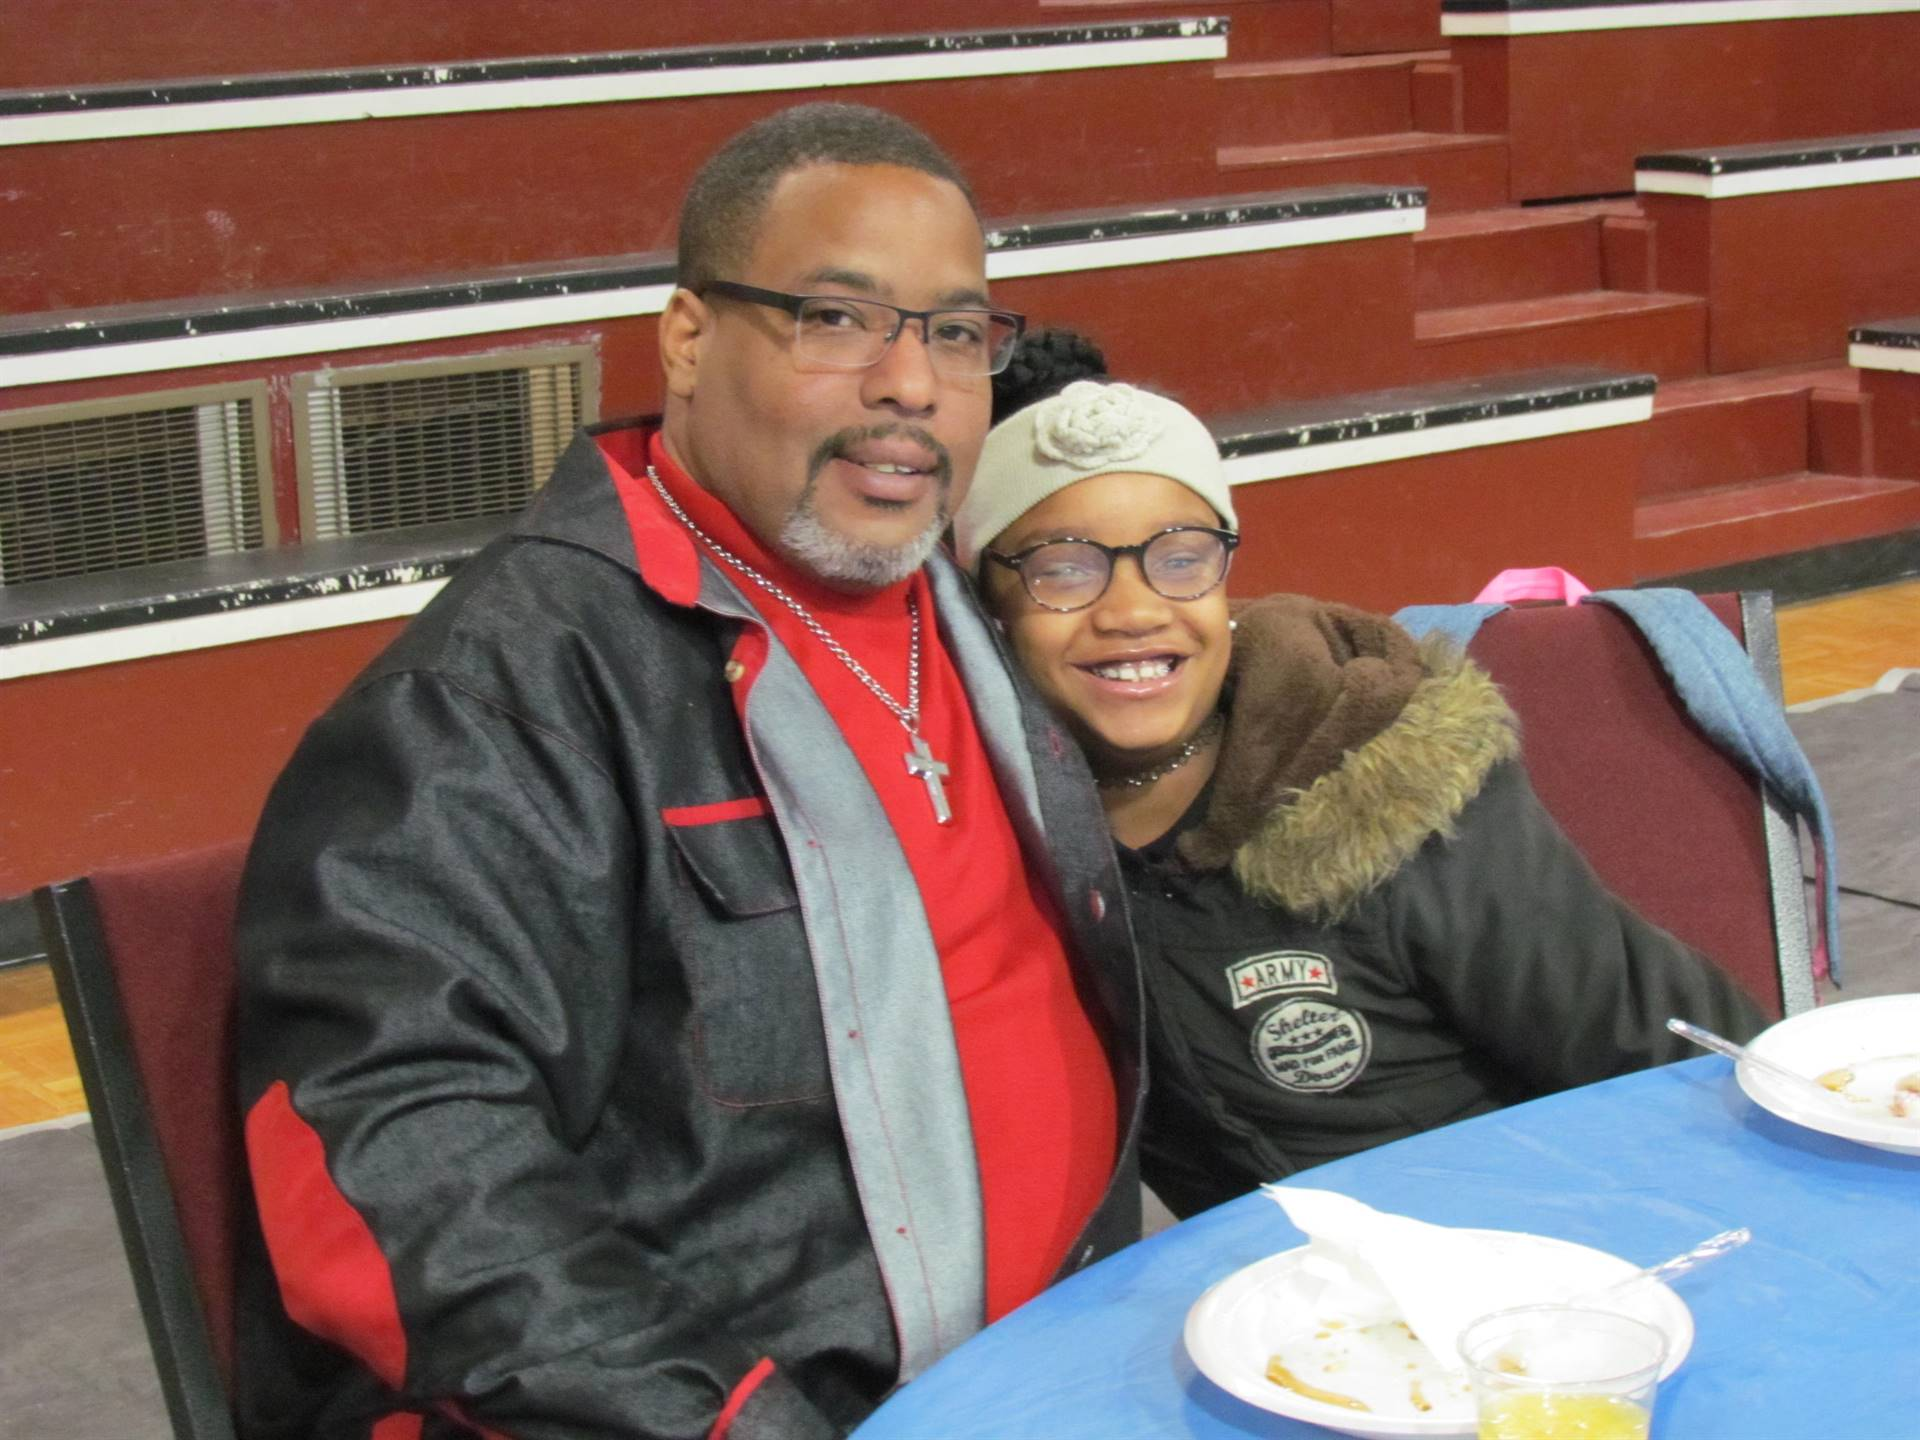 dad and daughter posing for picture